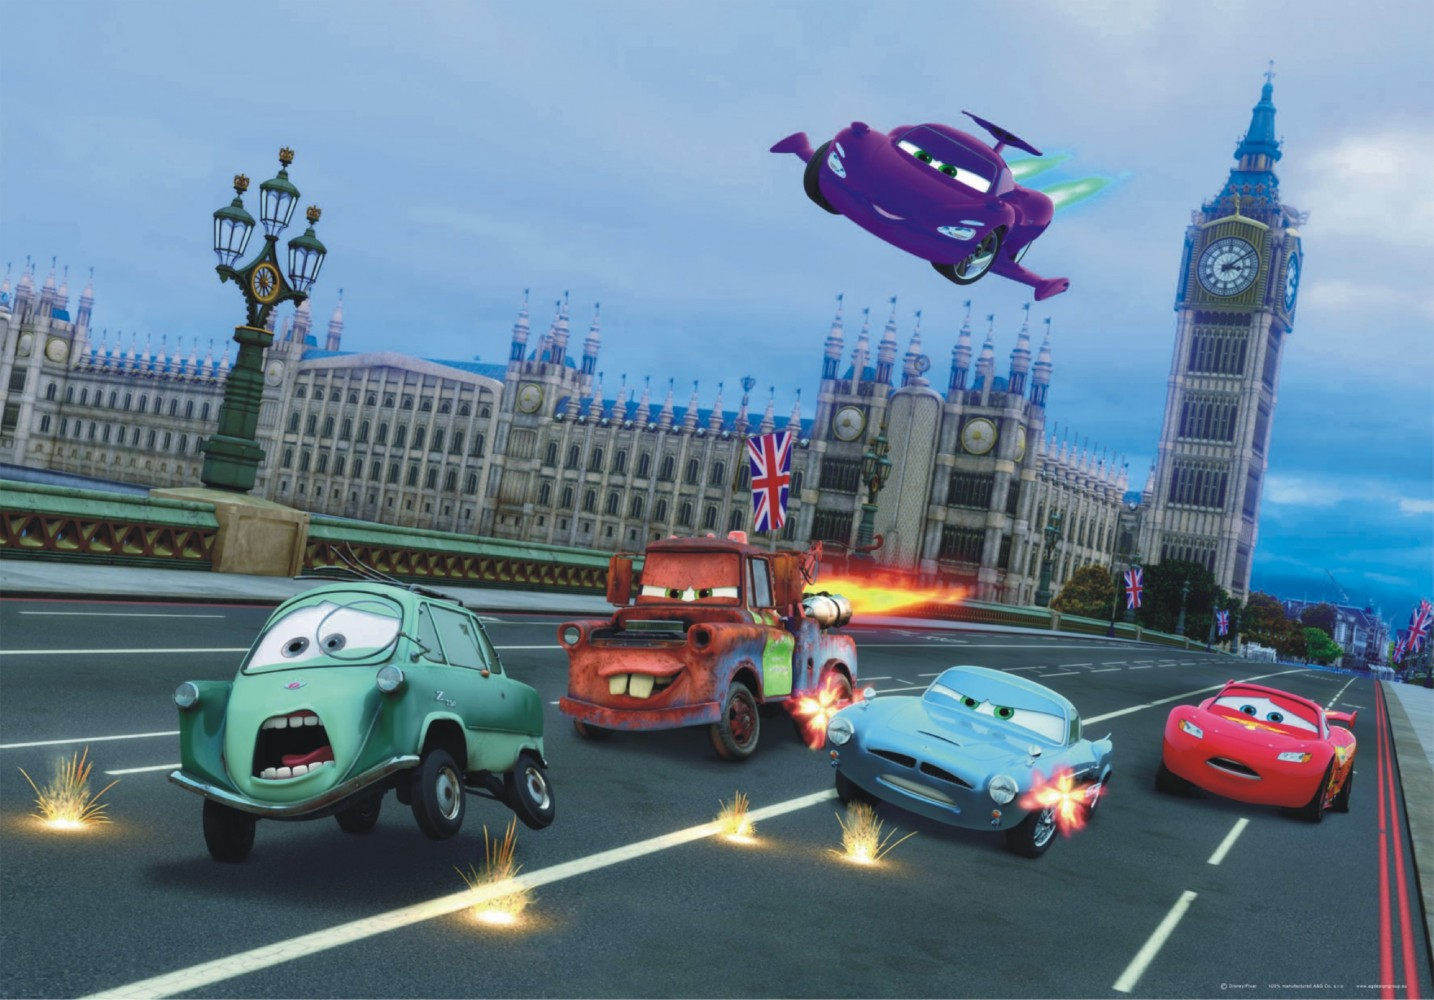 Xxl poster wall mural wallpaper disney cars 2 london for Car wallpaper mural